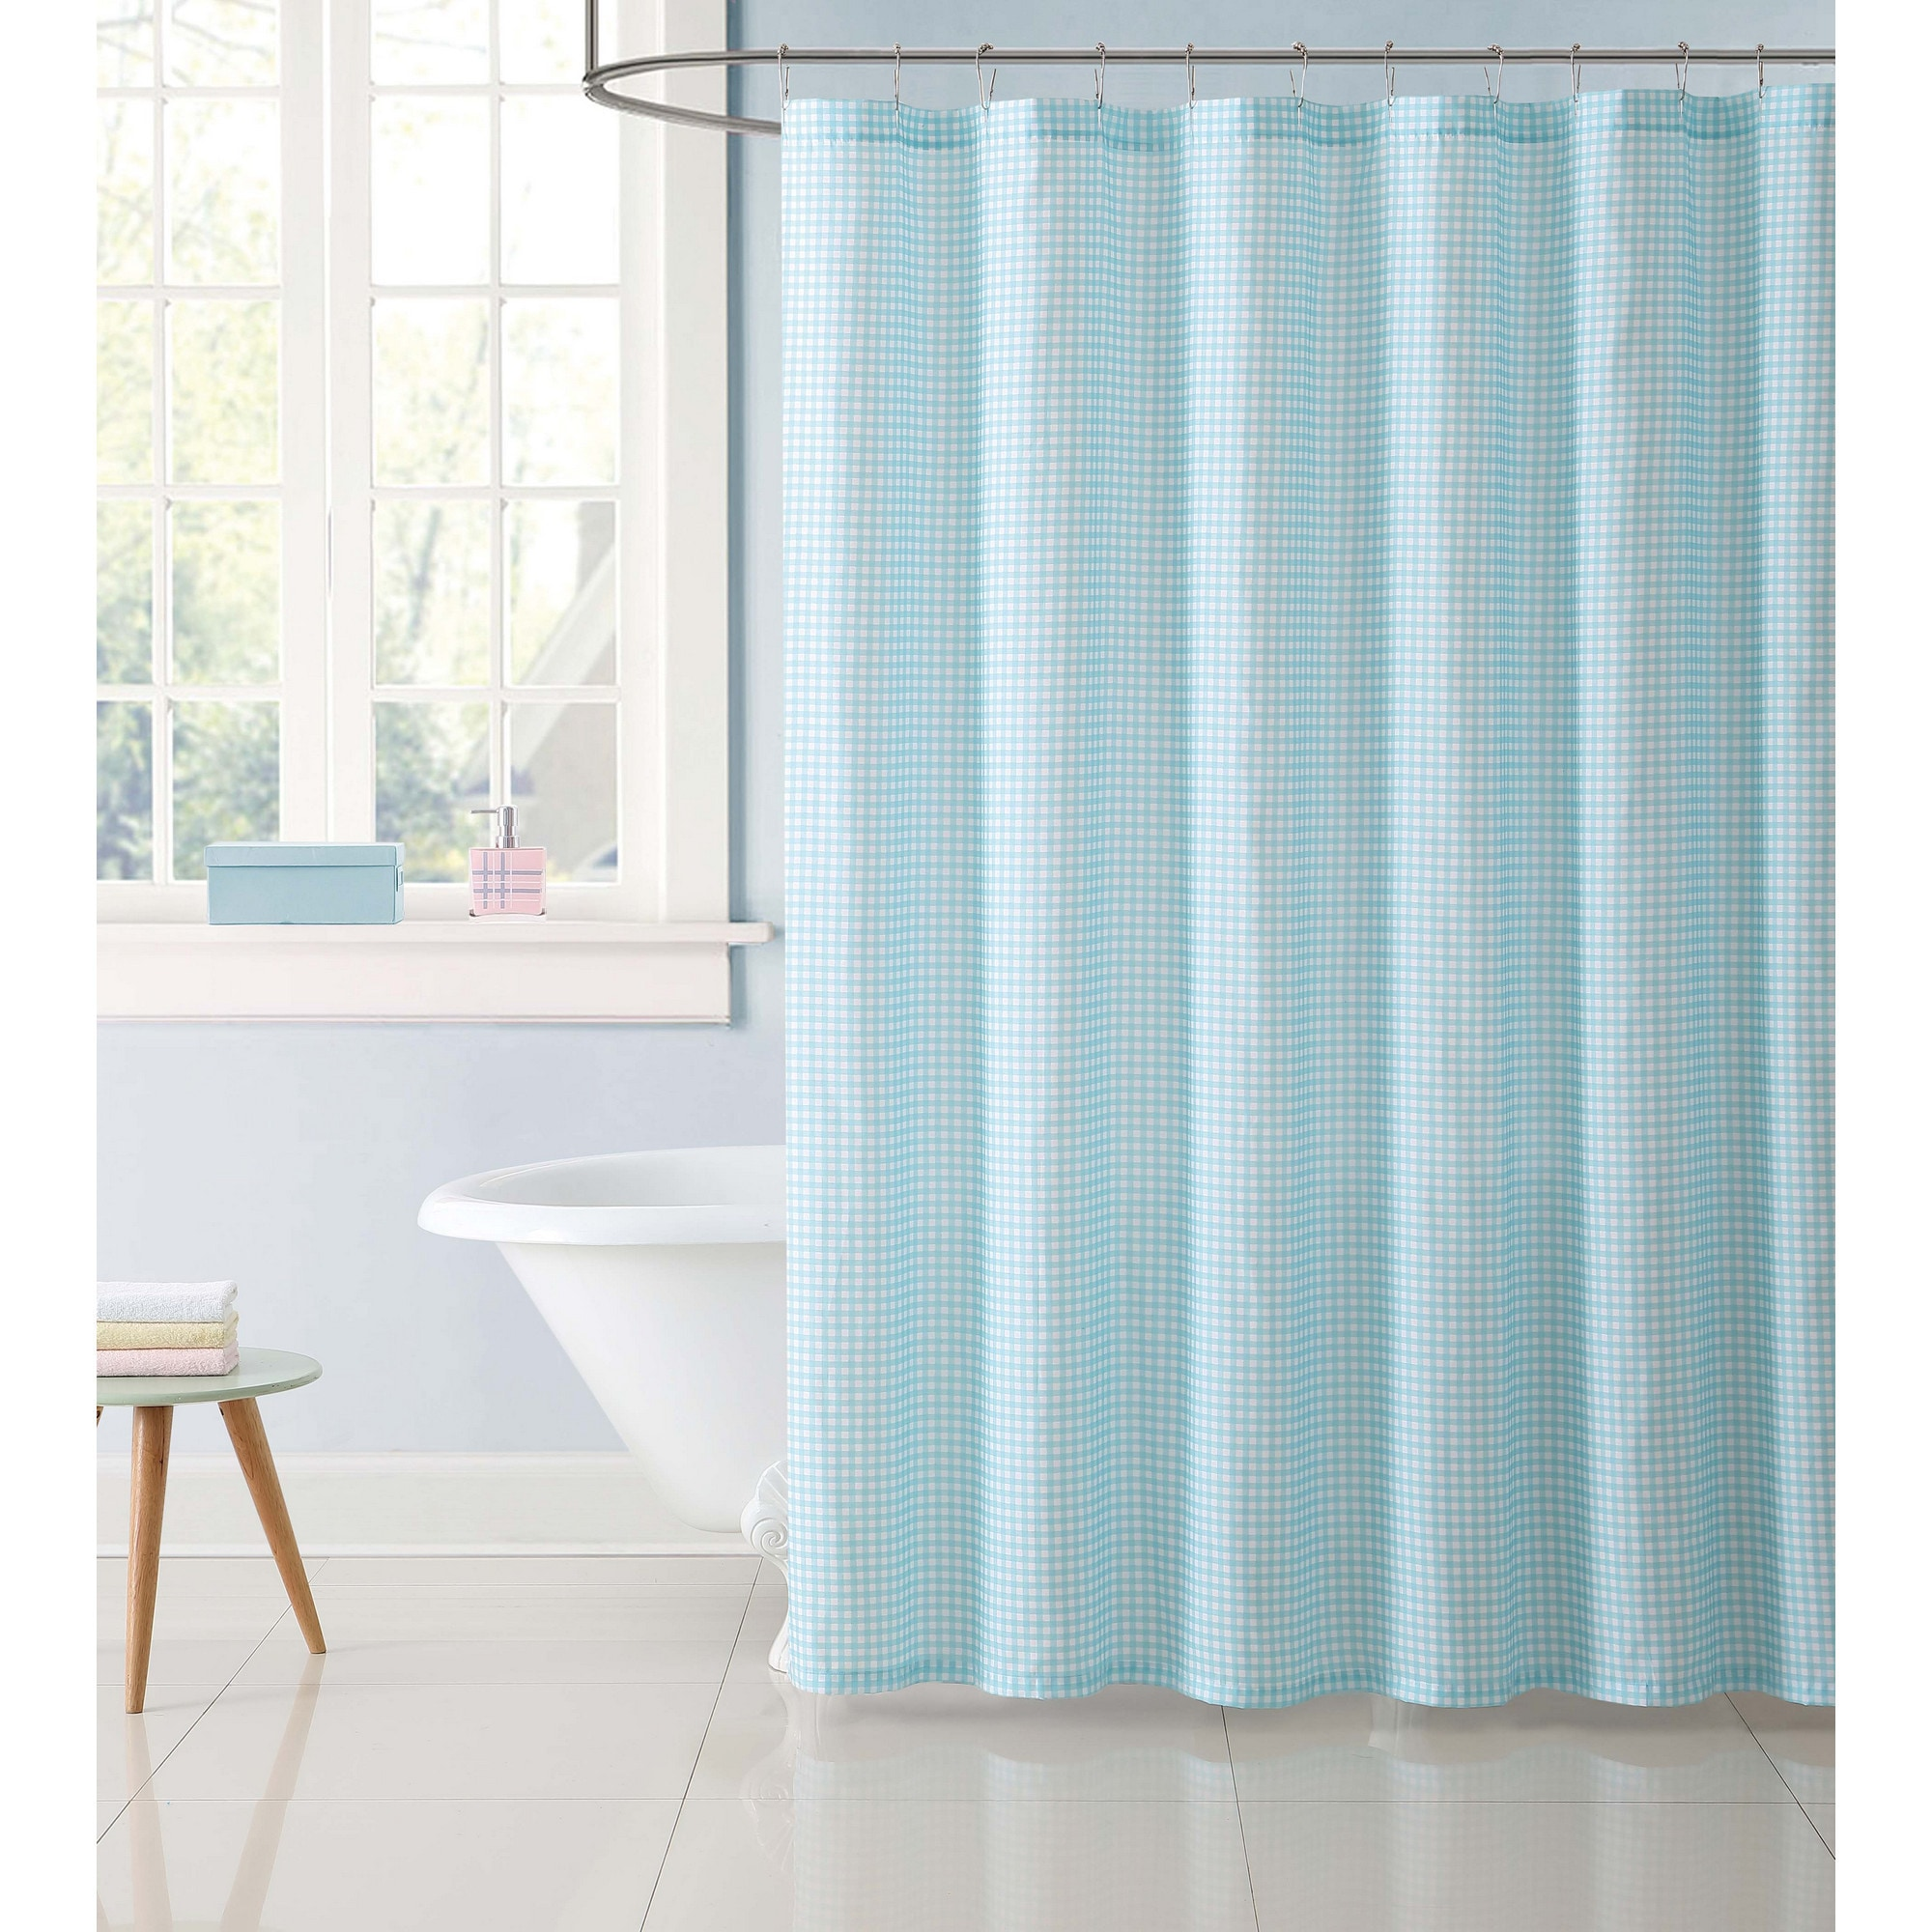 shower reelyouthhartford pink blue navy org gingham curtain checkered